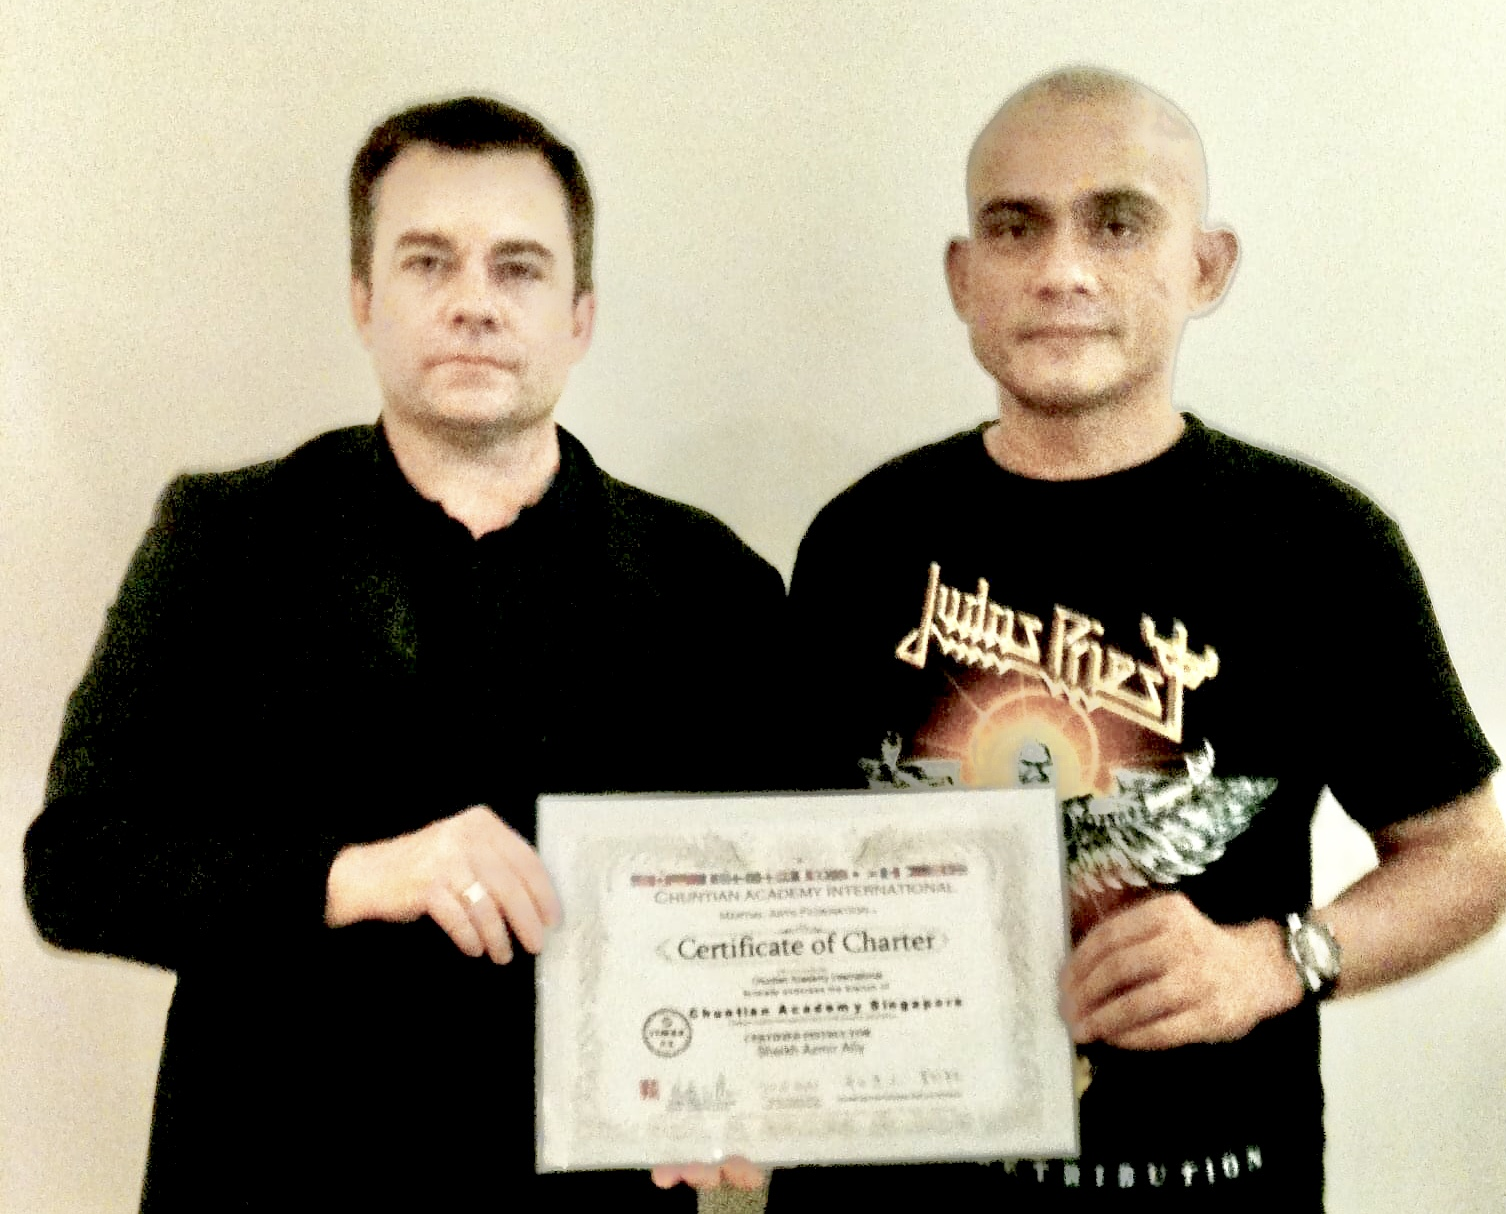 Master Plewes in Singapore granting a school charter to Sheik Azmir after government Martial Arts and Security Approval